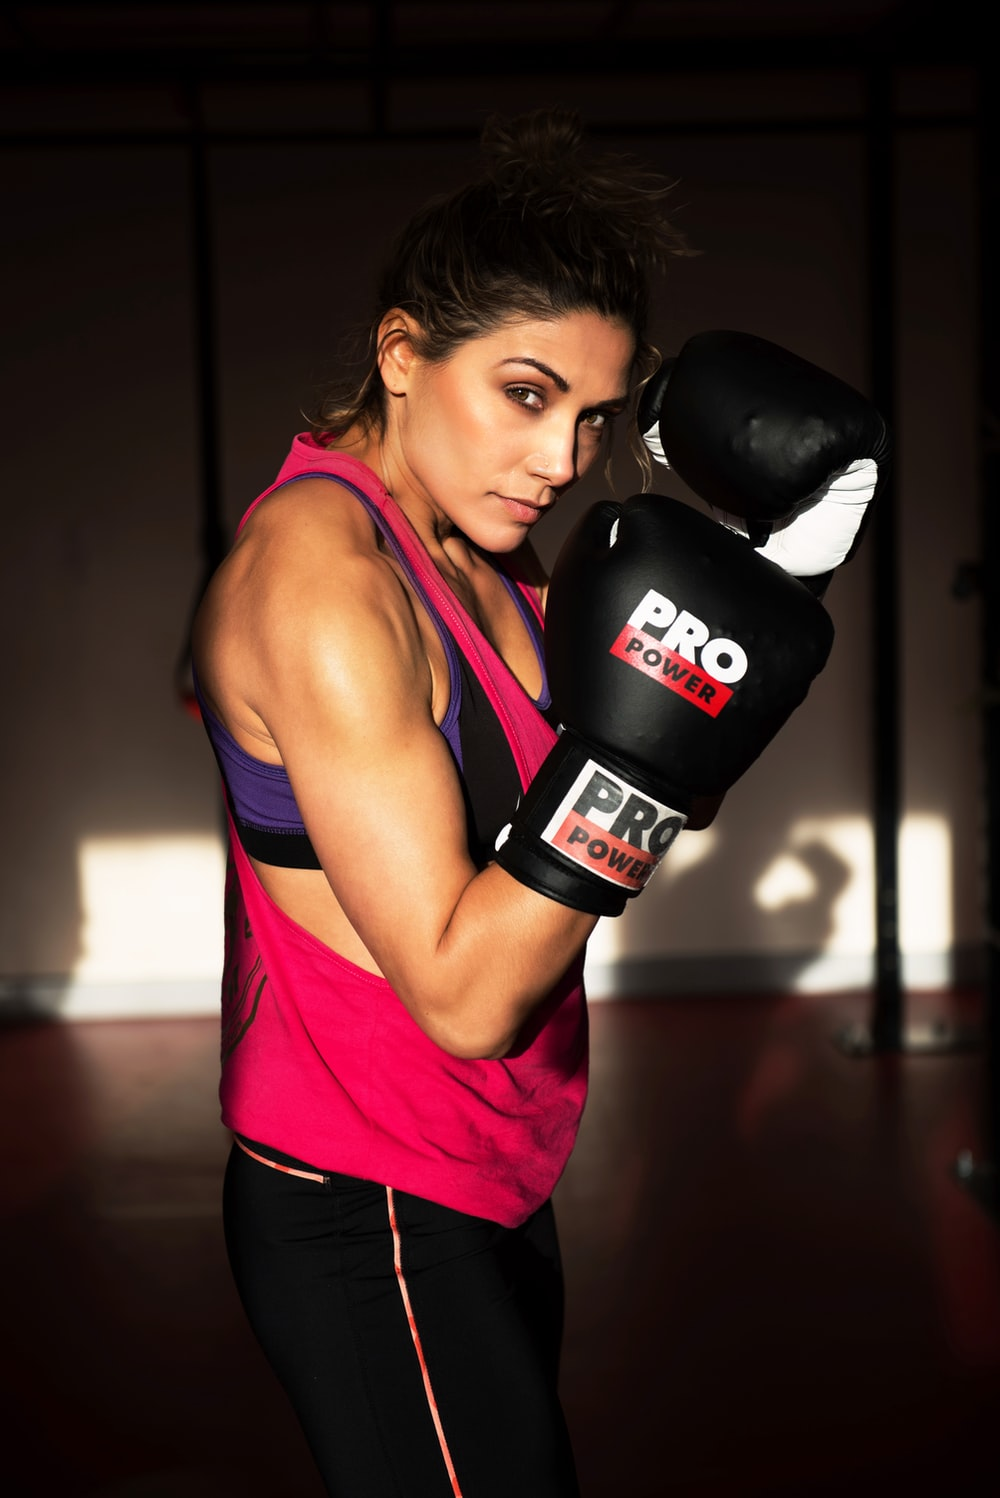 woman in pink tank top and black boxing gloves